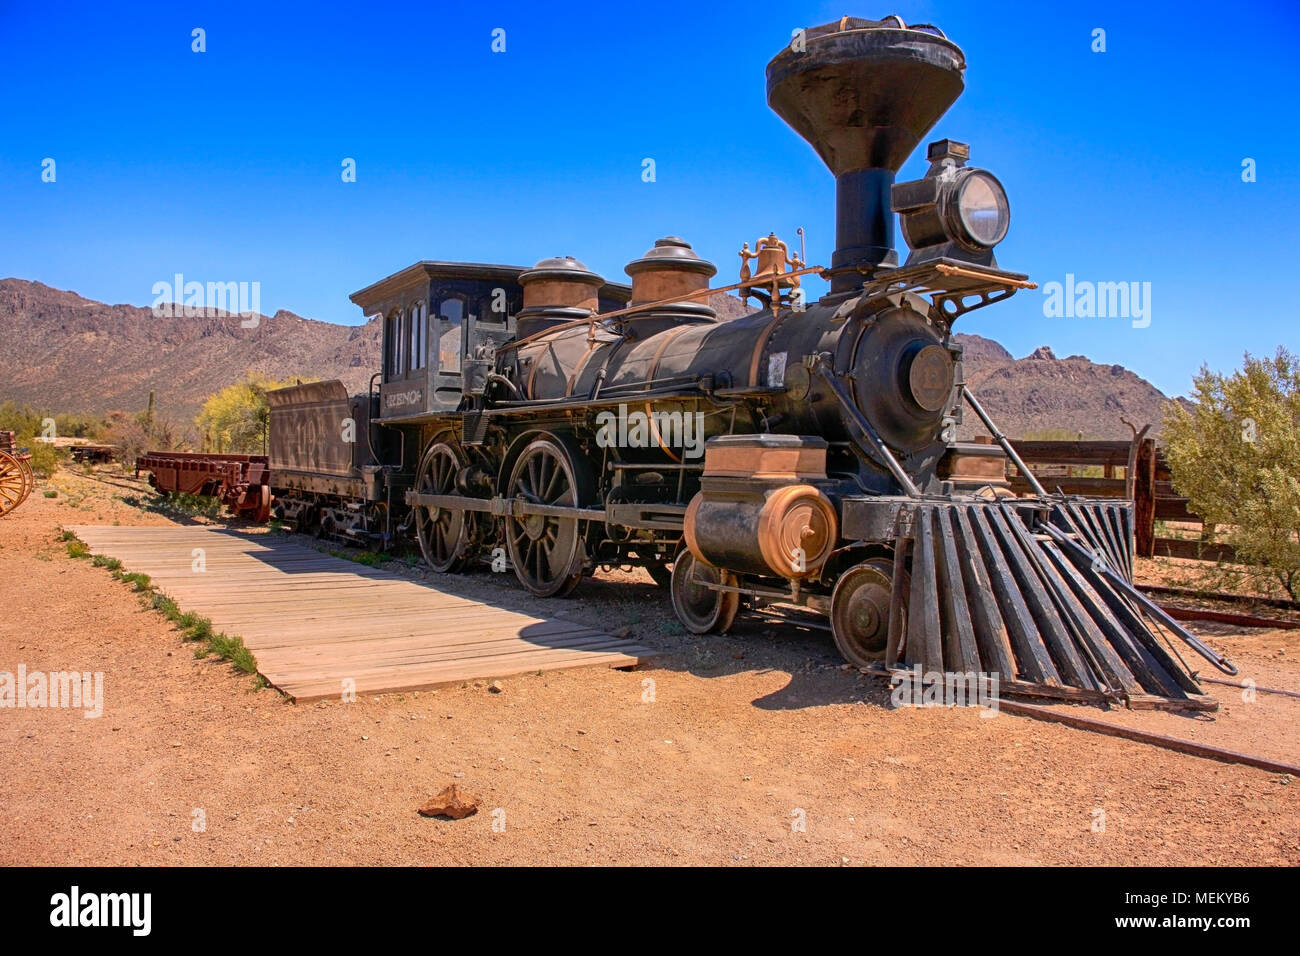 The Reno Locomotime used in the Gambler movie at the Old Tucson Film Studios amusement park in Arizona - Stock Image